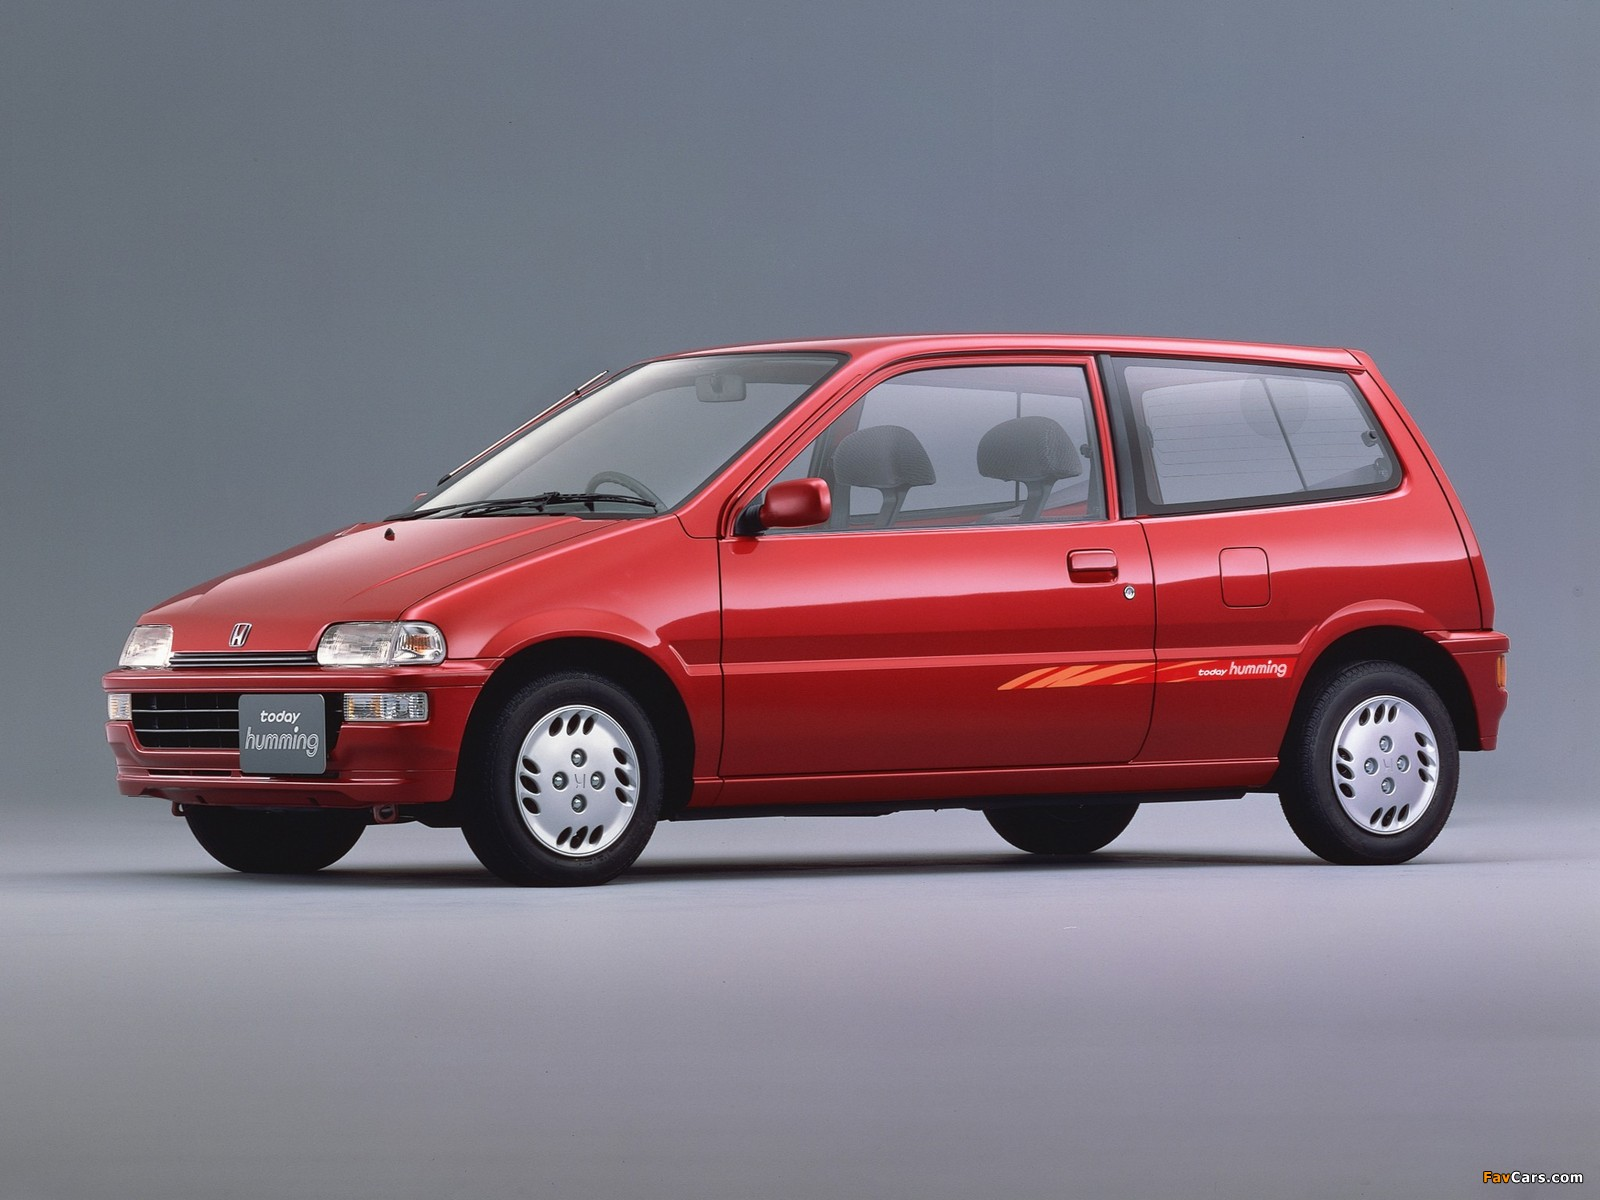 honda today 1994 pictures